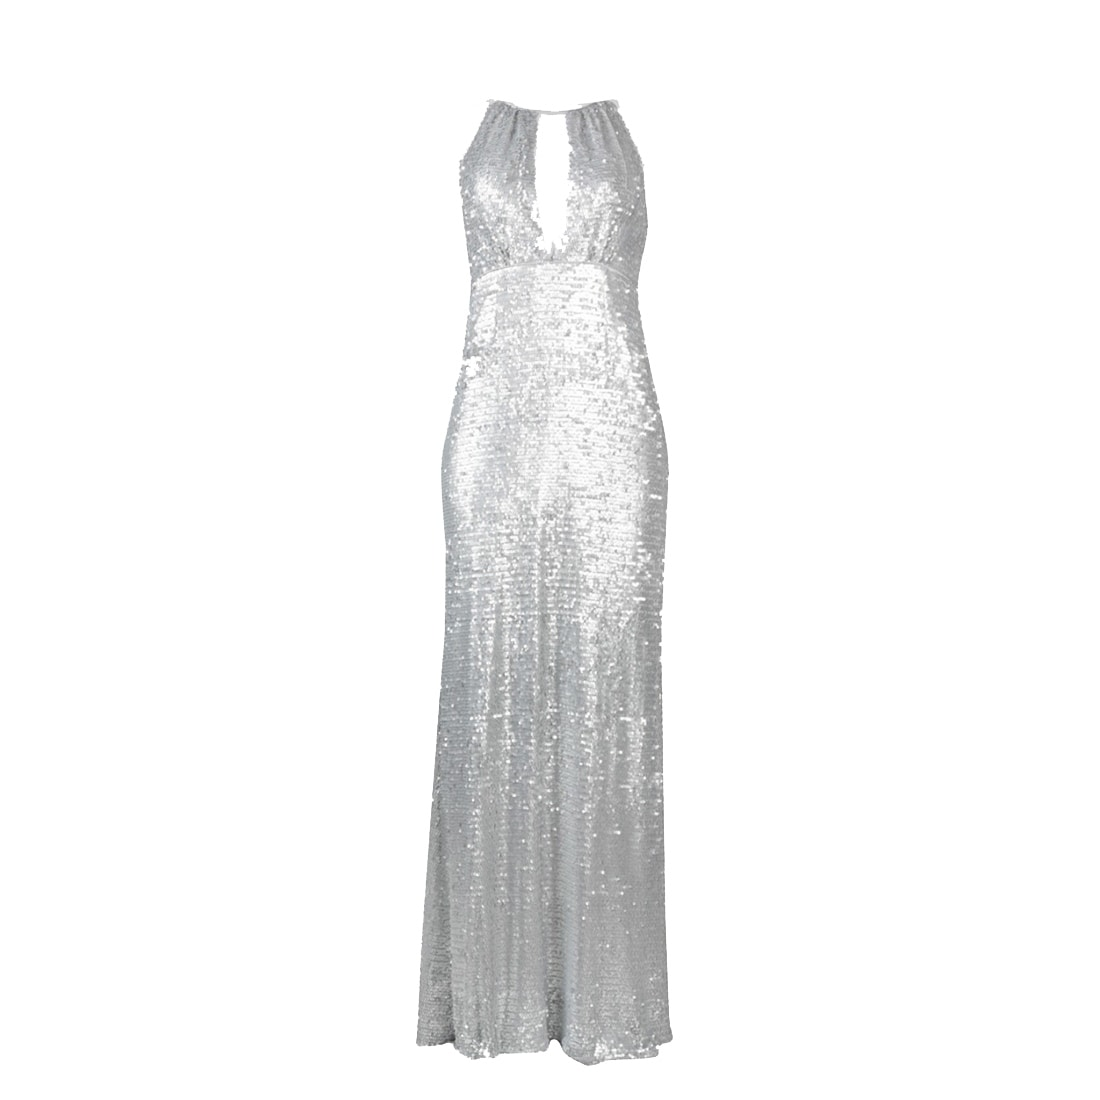 Adrianna Papell Halter Neck Piping Detail Keyhole Sequin Dress, Matte  Silver, 20